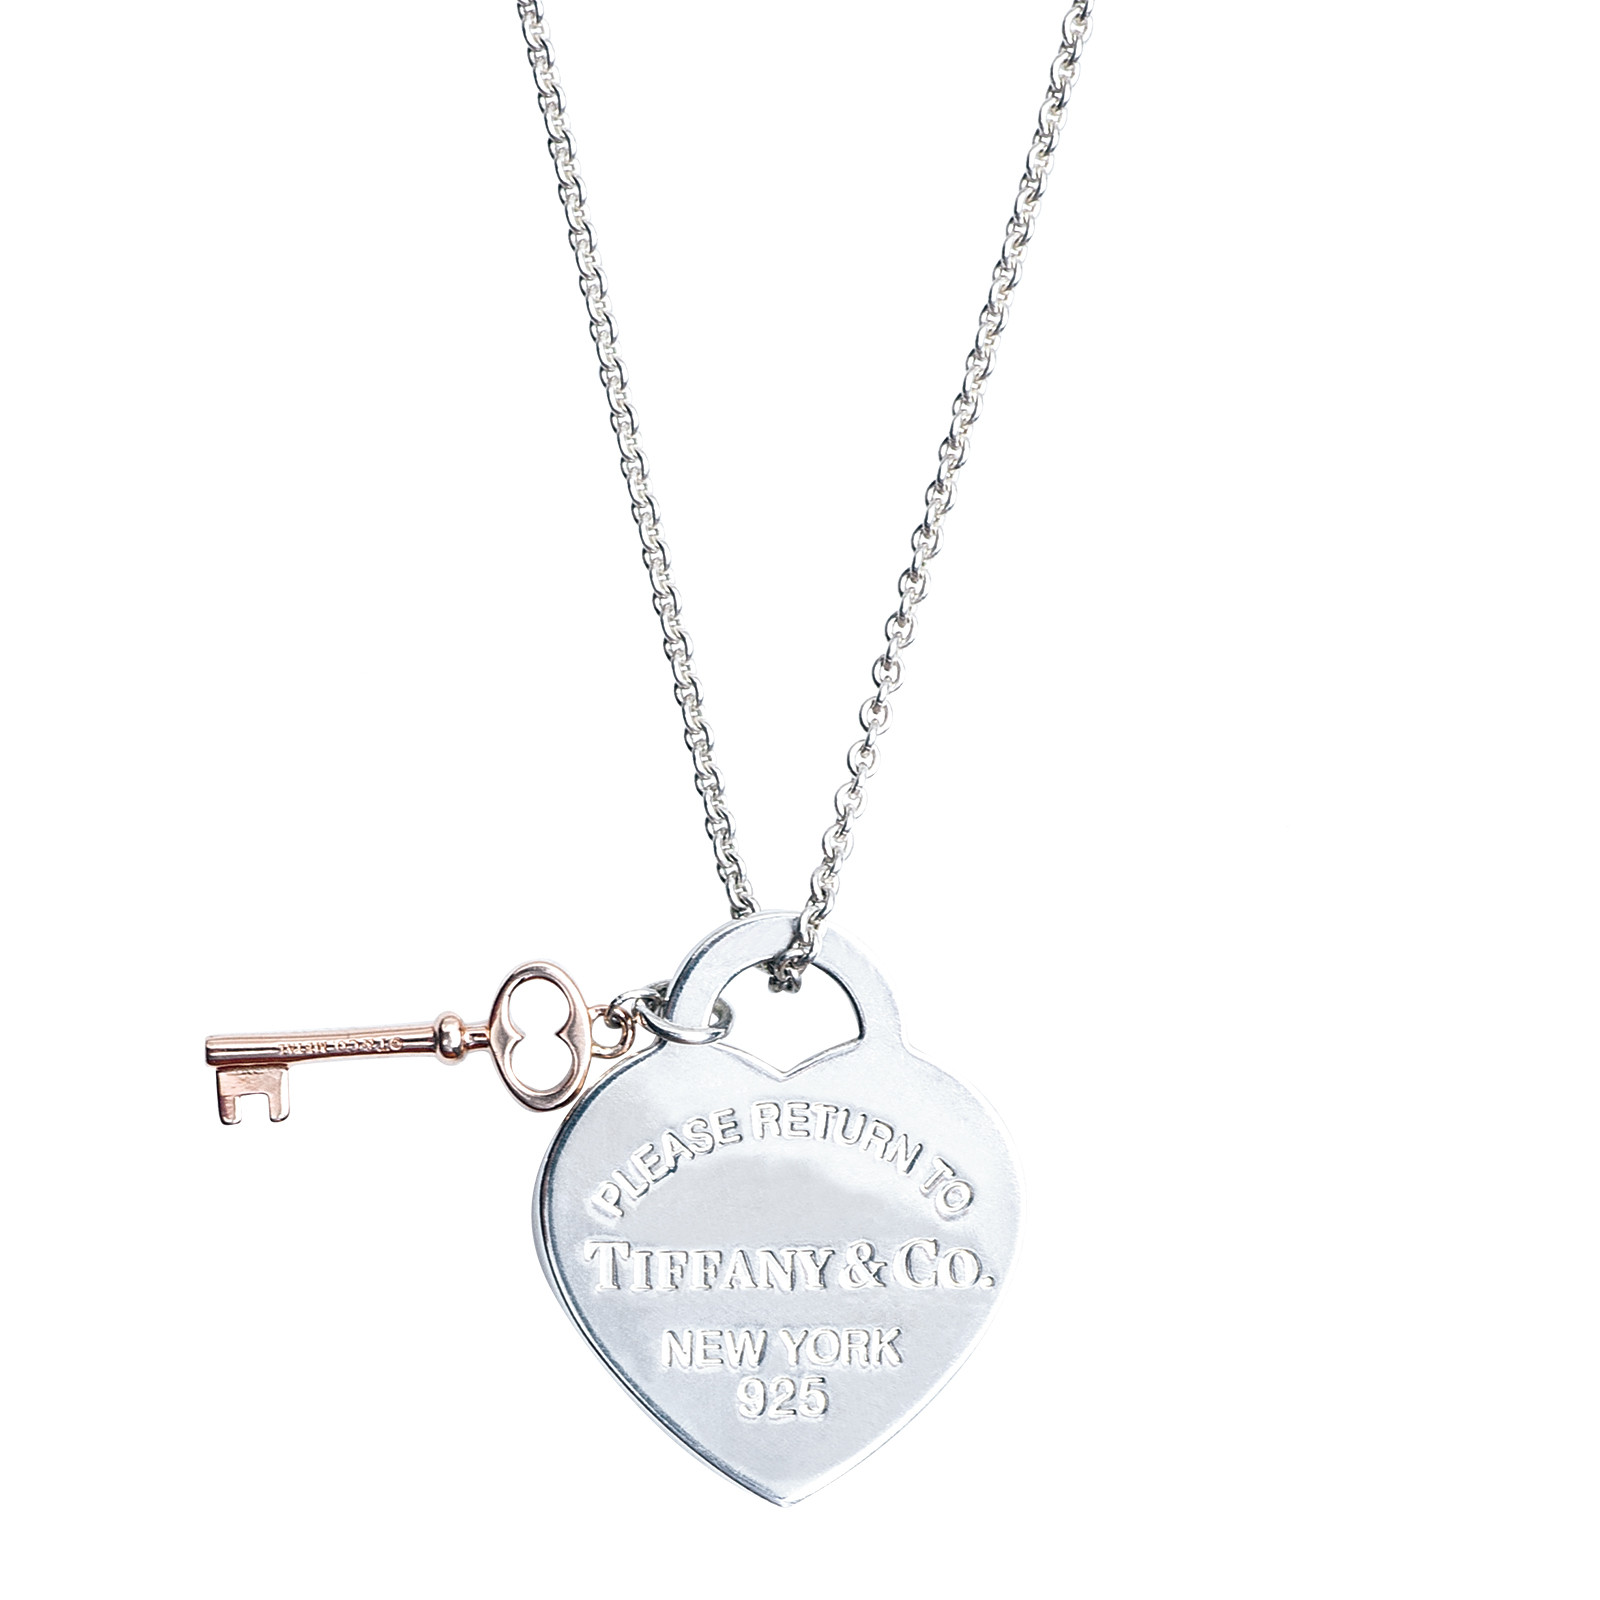 Vintage Tiffany & Co. Please Return to Tiffany Heart Key Tag Necklace